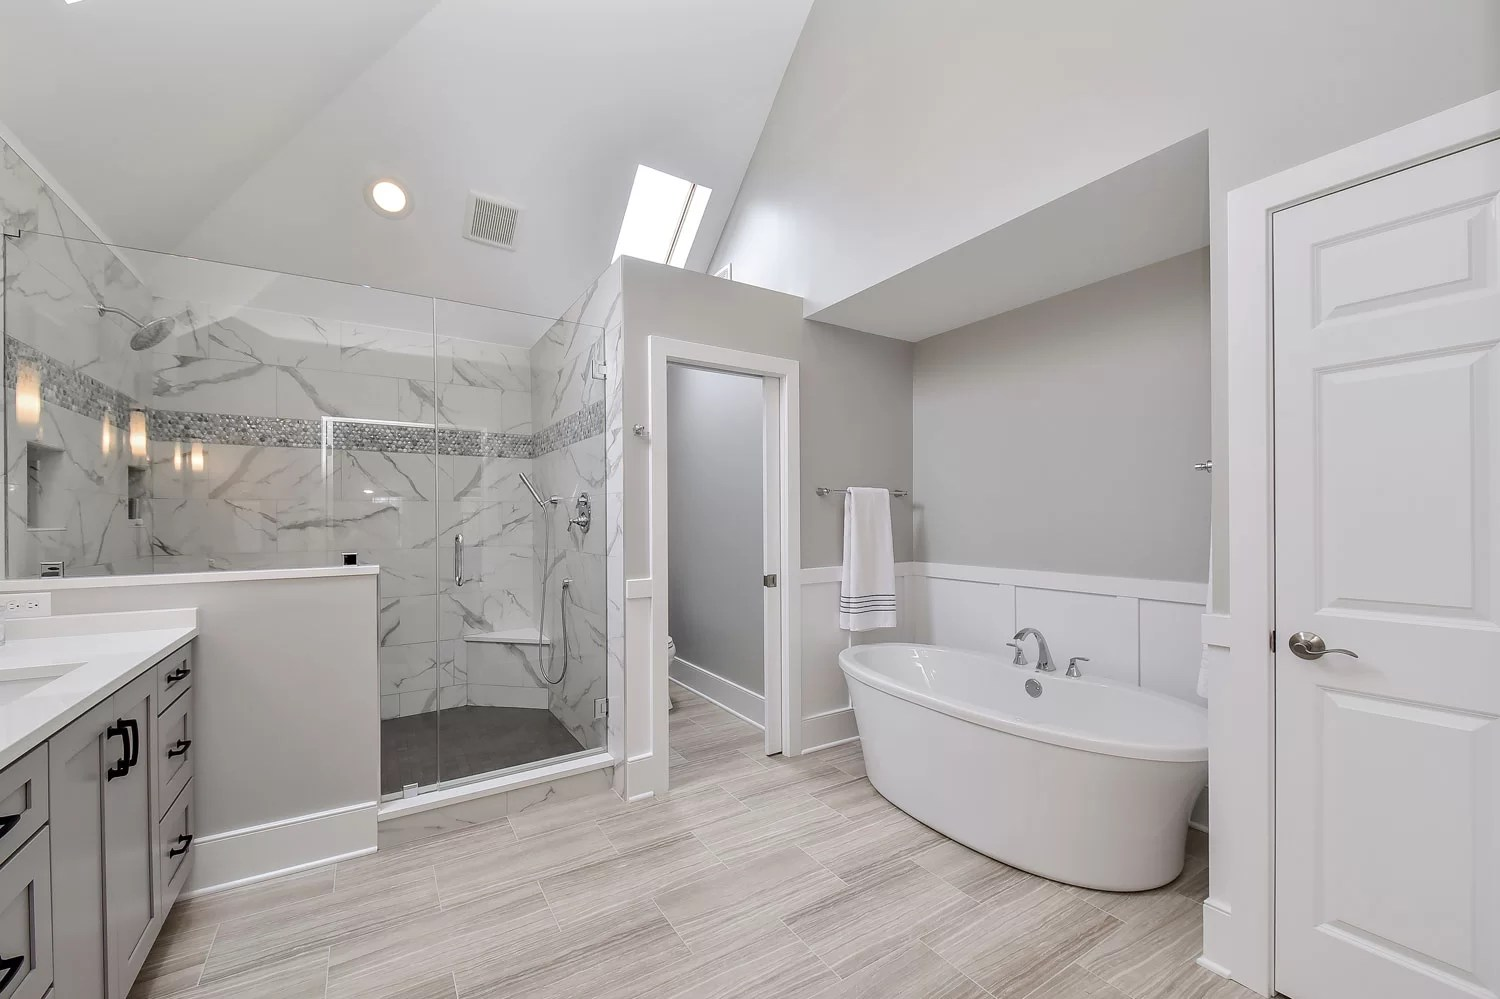 Sarah Ray 39 S Master Bathroom Remodel Pictures Home Remodeling Contractors Sebring Design Build